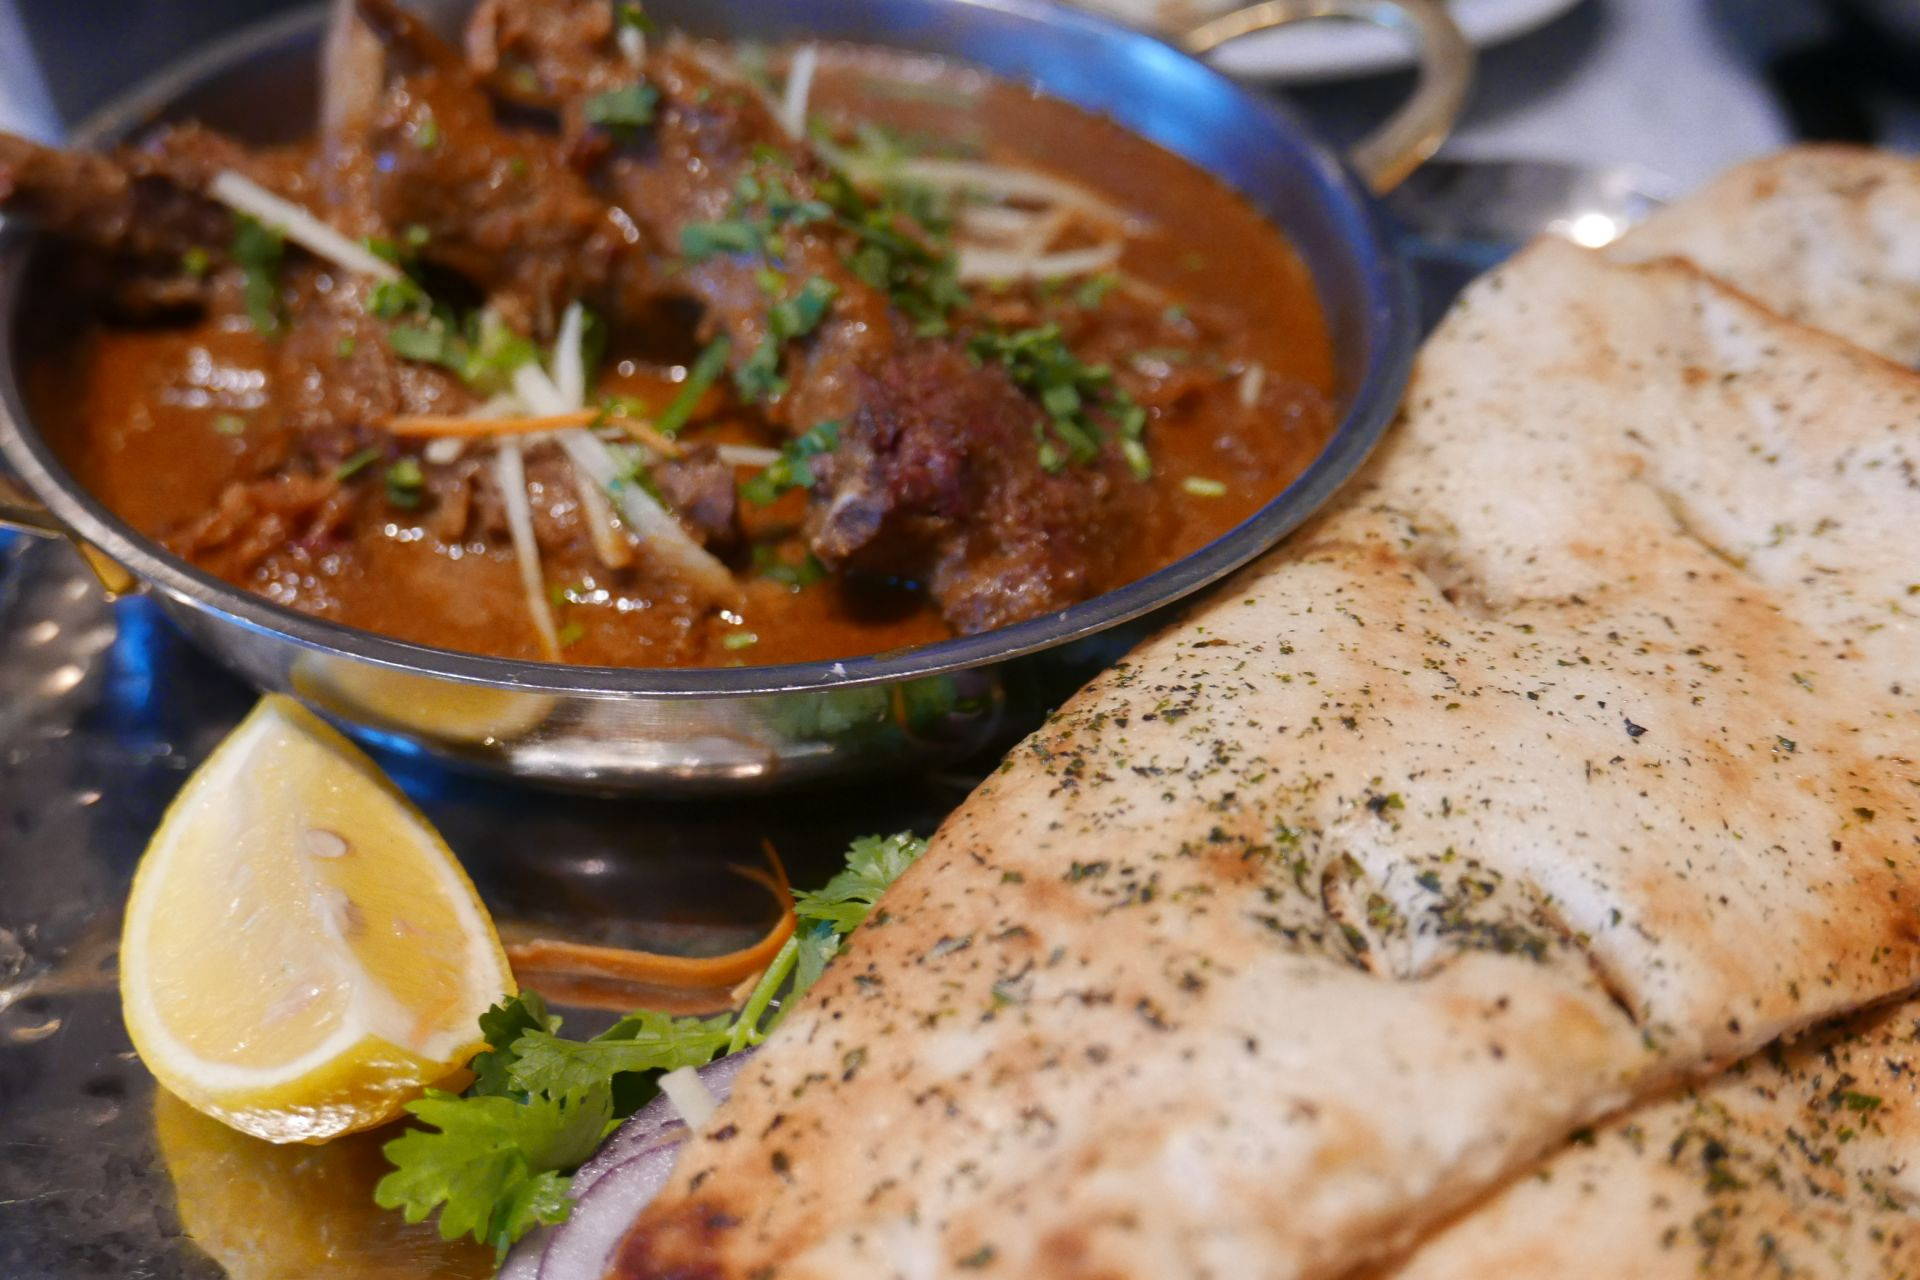 The Chef's Special at Dishoom Birmingham, mutton chaap korma with roti